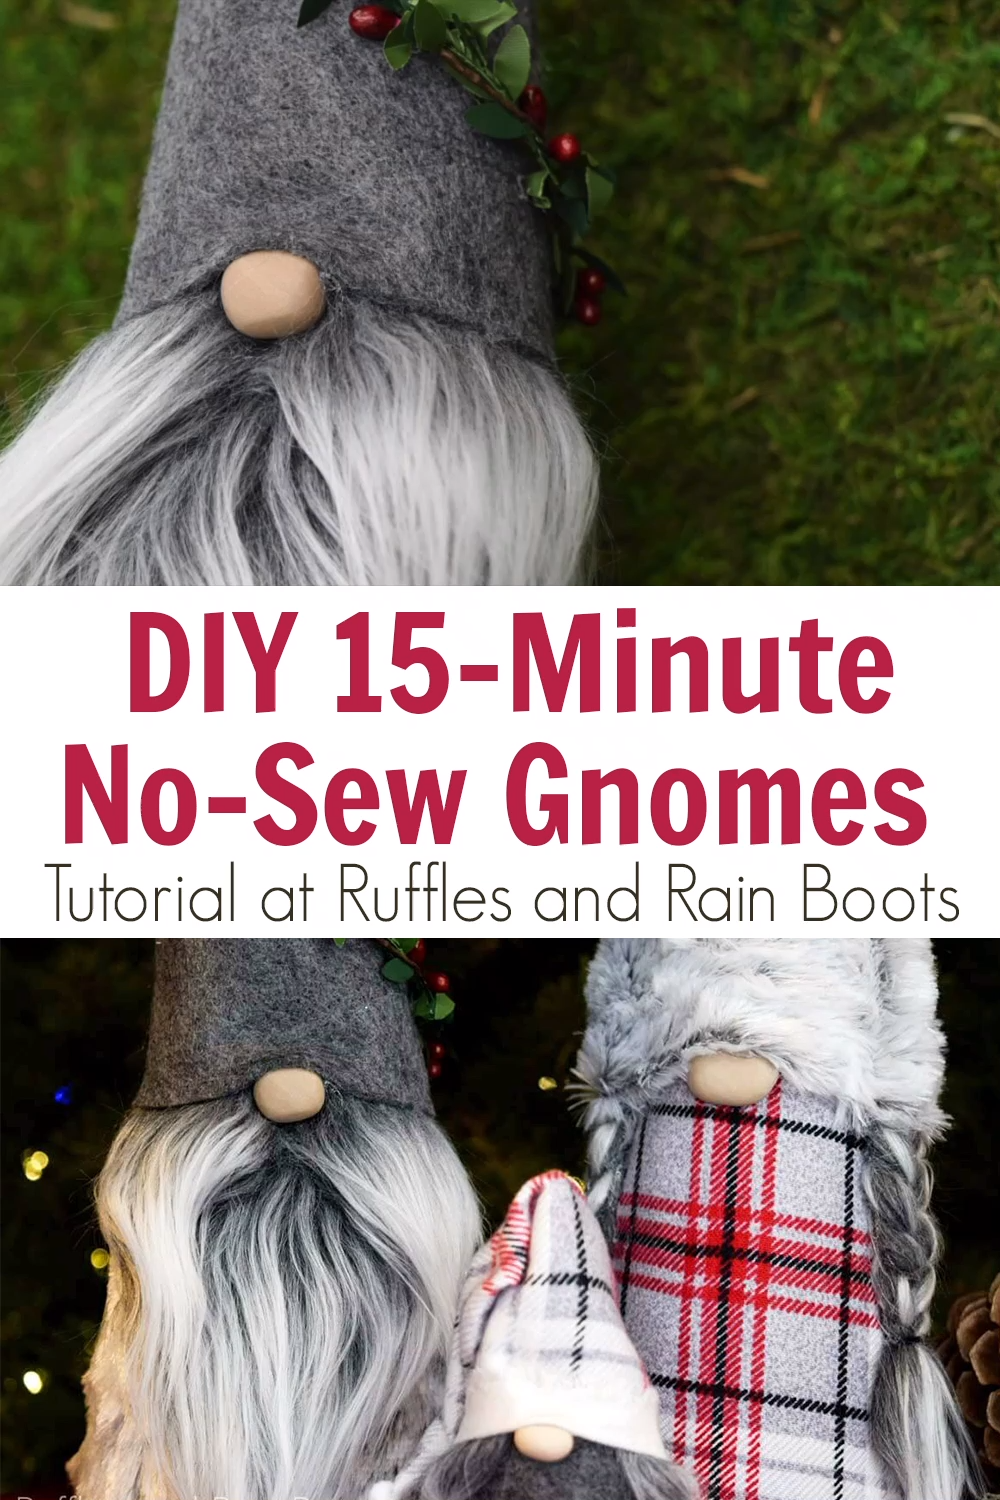 Learn how to make a gnome the easiest way using this no sew cone gnome tutorial. I've made it simple, fast, and most of all fun to make a family of coordinating Christmas gnomes for your home or for others. #gnome #christmasgnome #gnometutorial #rufflesandrainboots